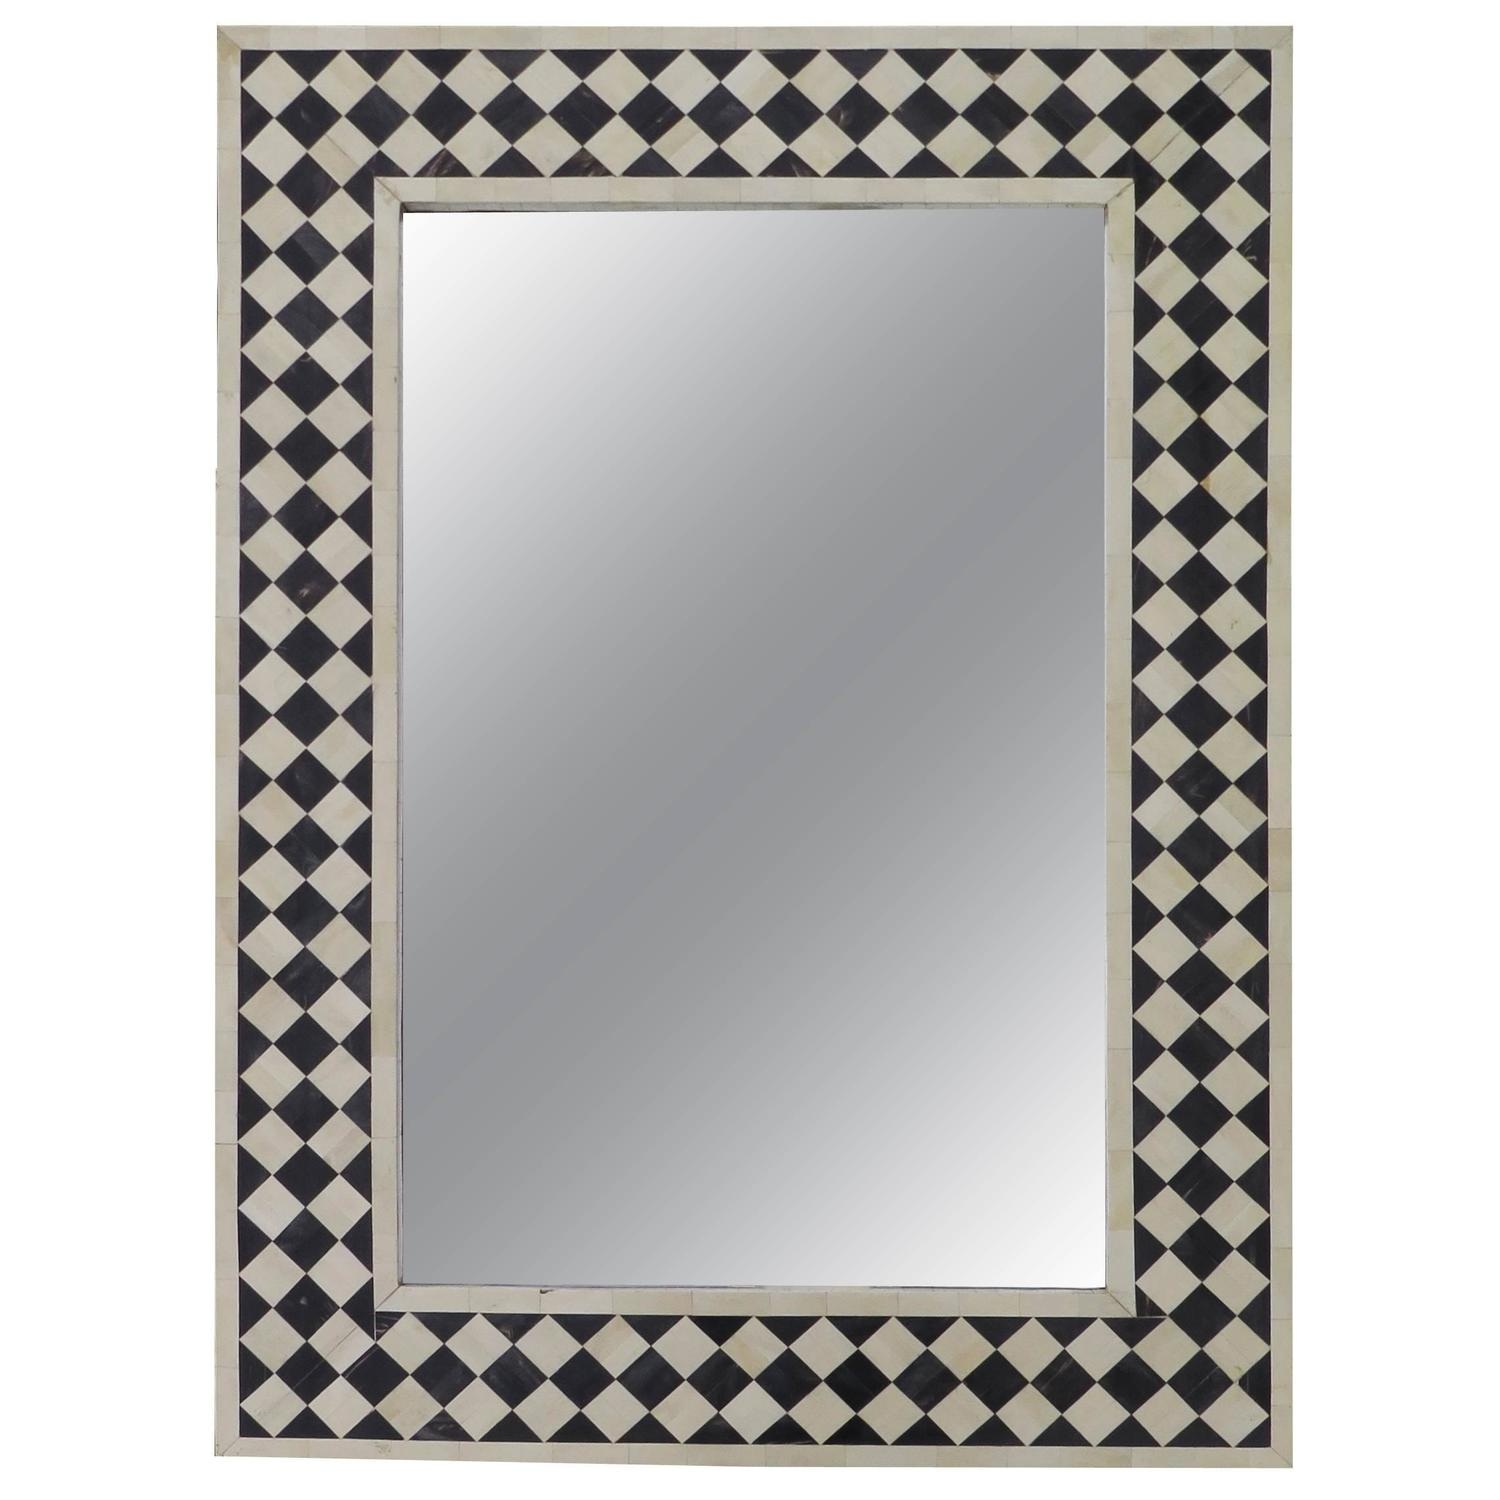 Arched gilt mirror at 1stdibs - Anglo Indian Black And White Bone Inlay Mirror Checkerboard Design